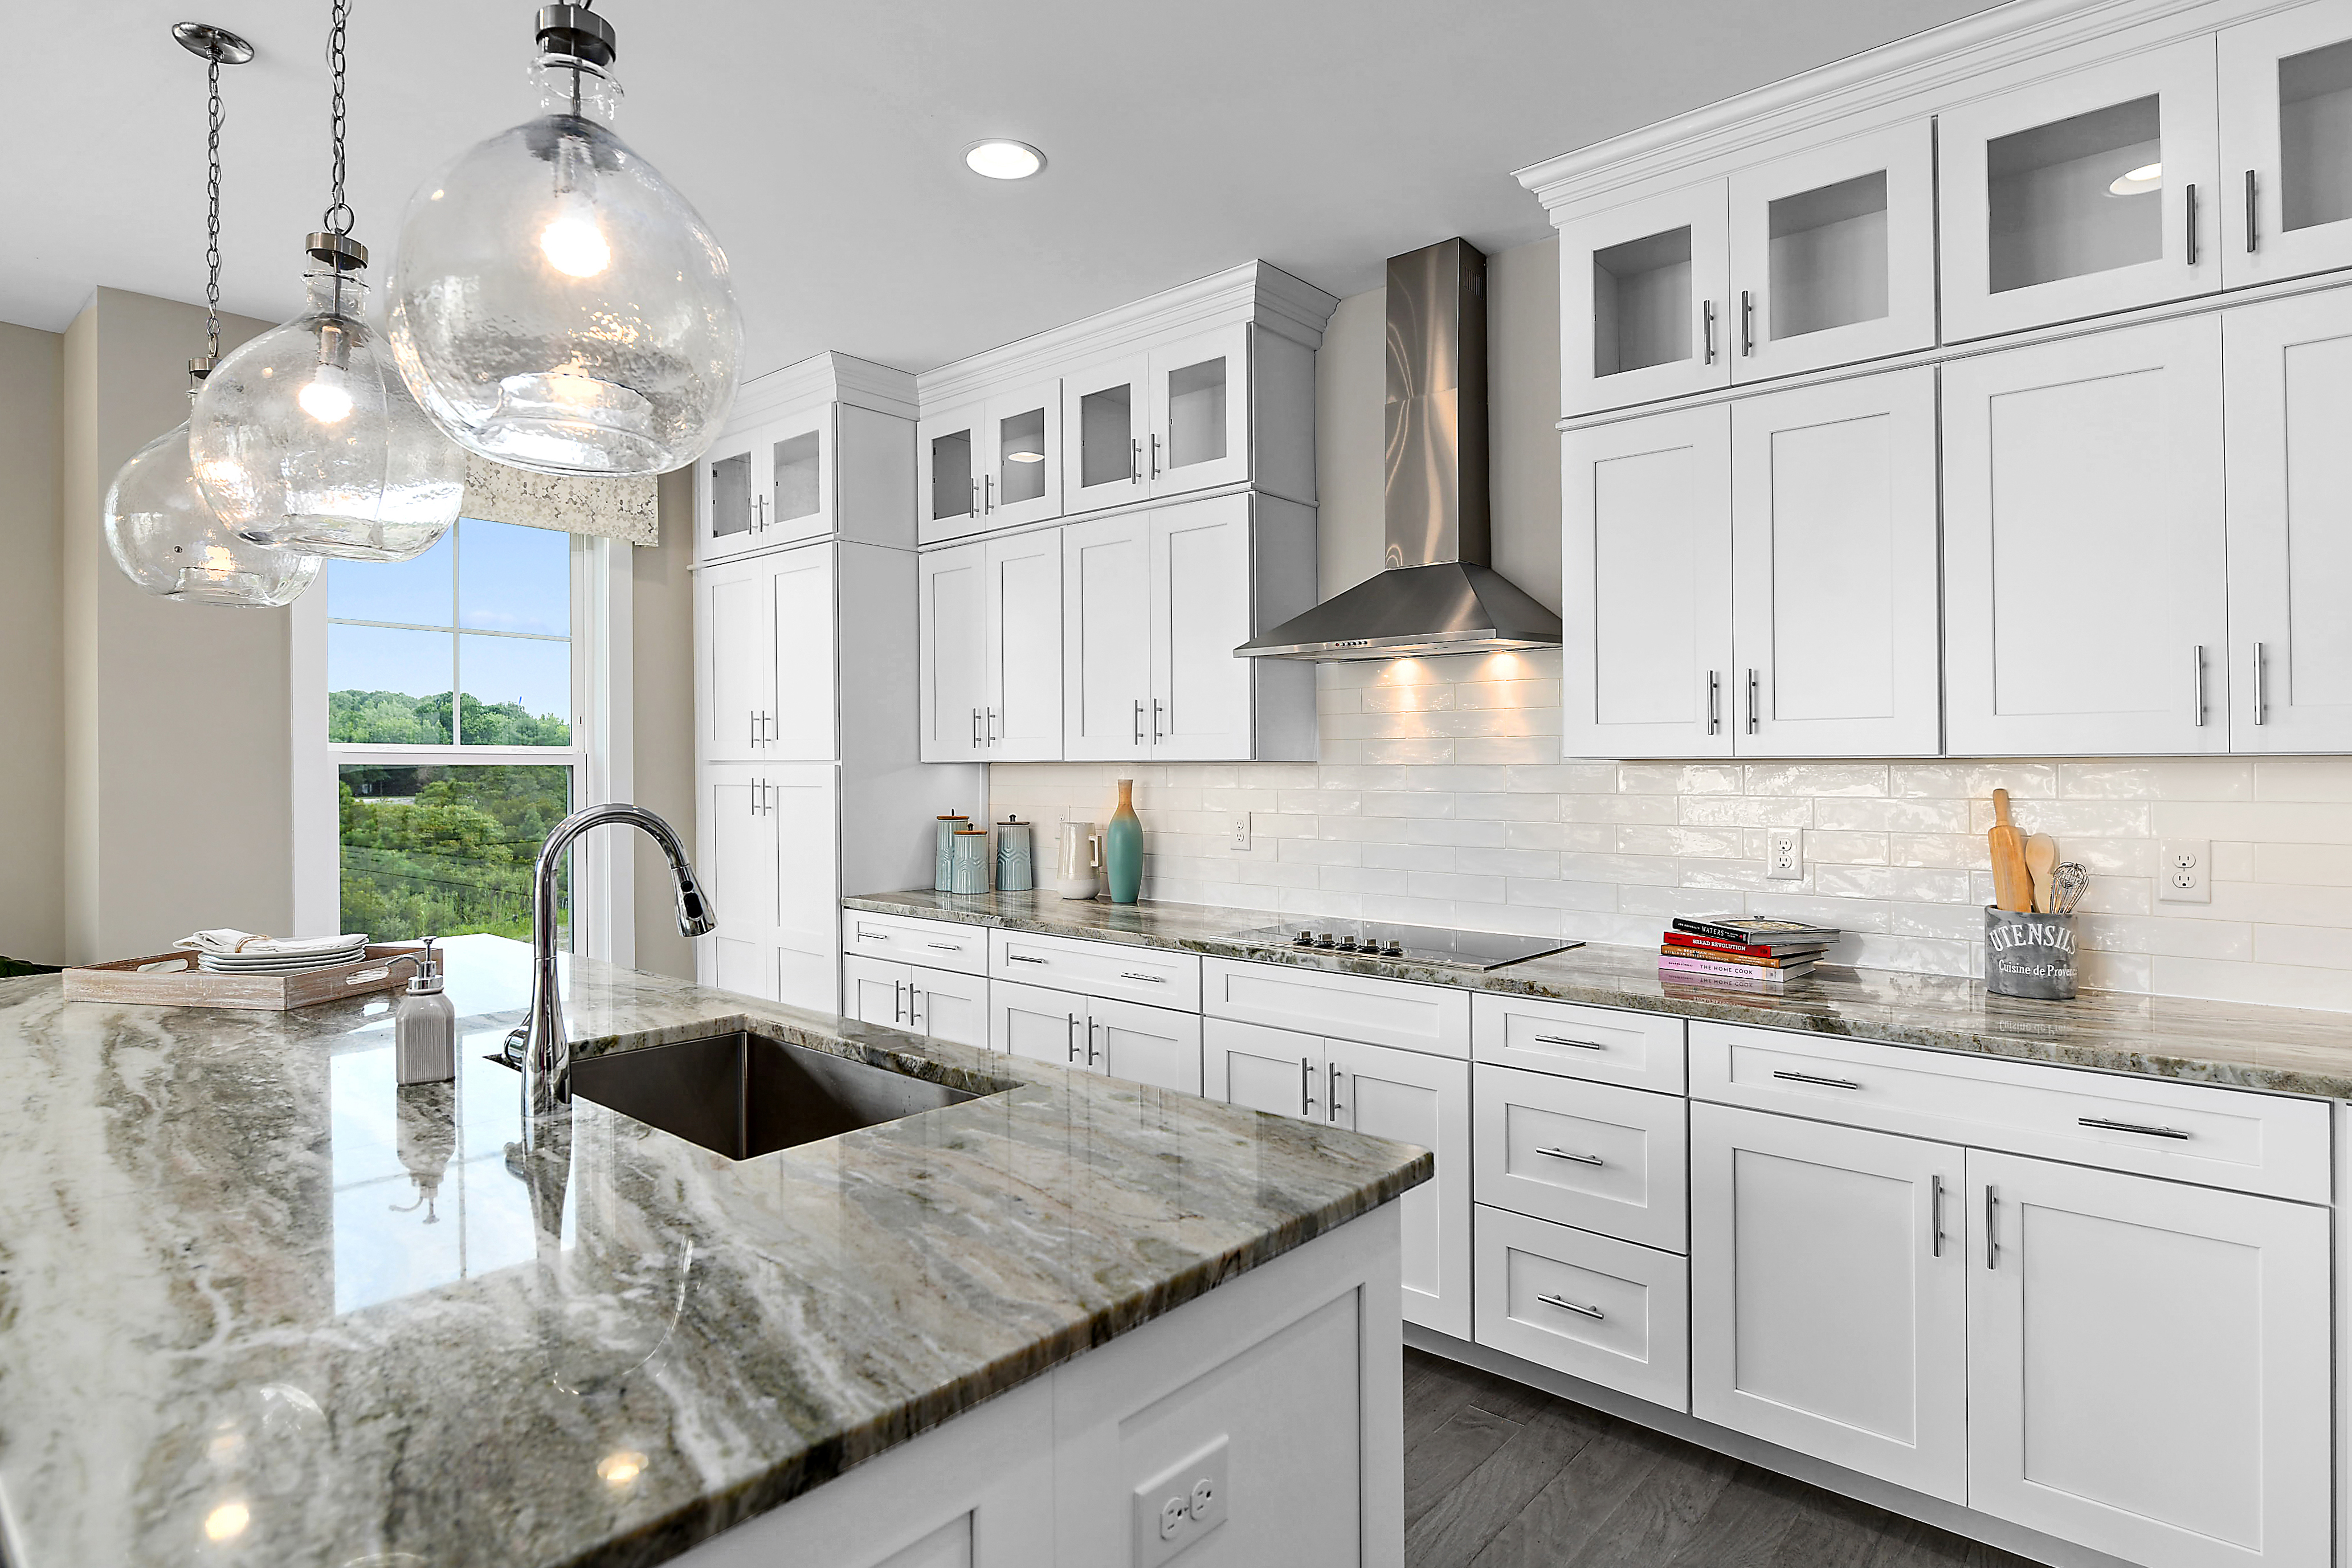 Gourmet Kitchen with White Cabinets, Glass Double Stacked Cabinets, Granite Counters, and Stainless Steel Appliances